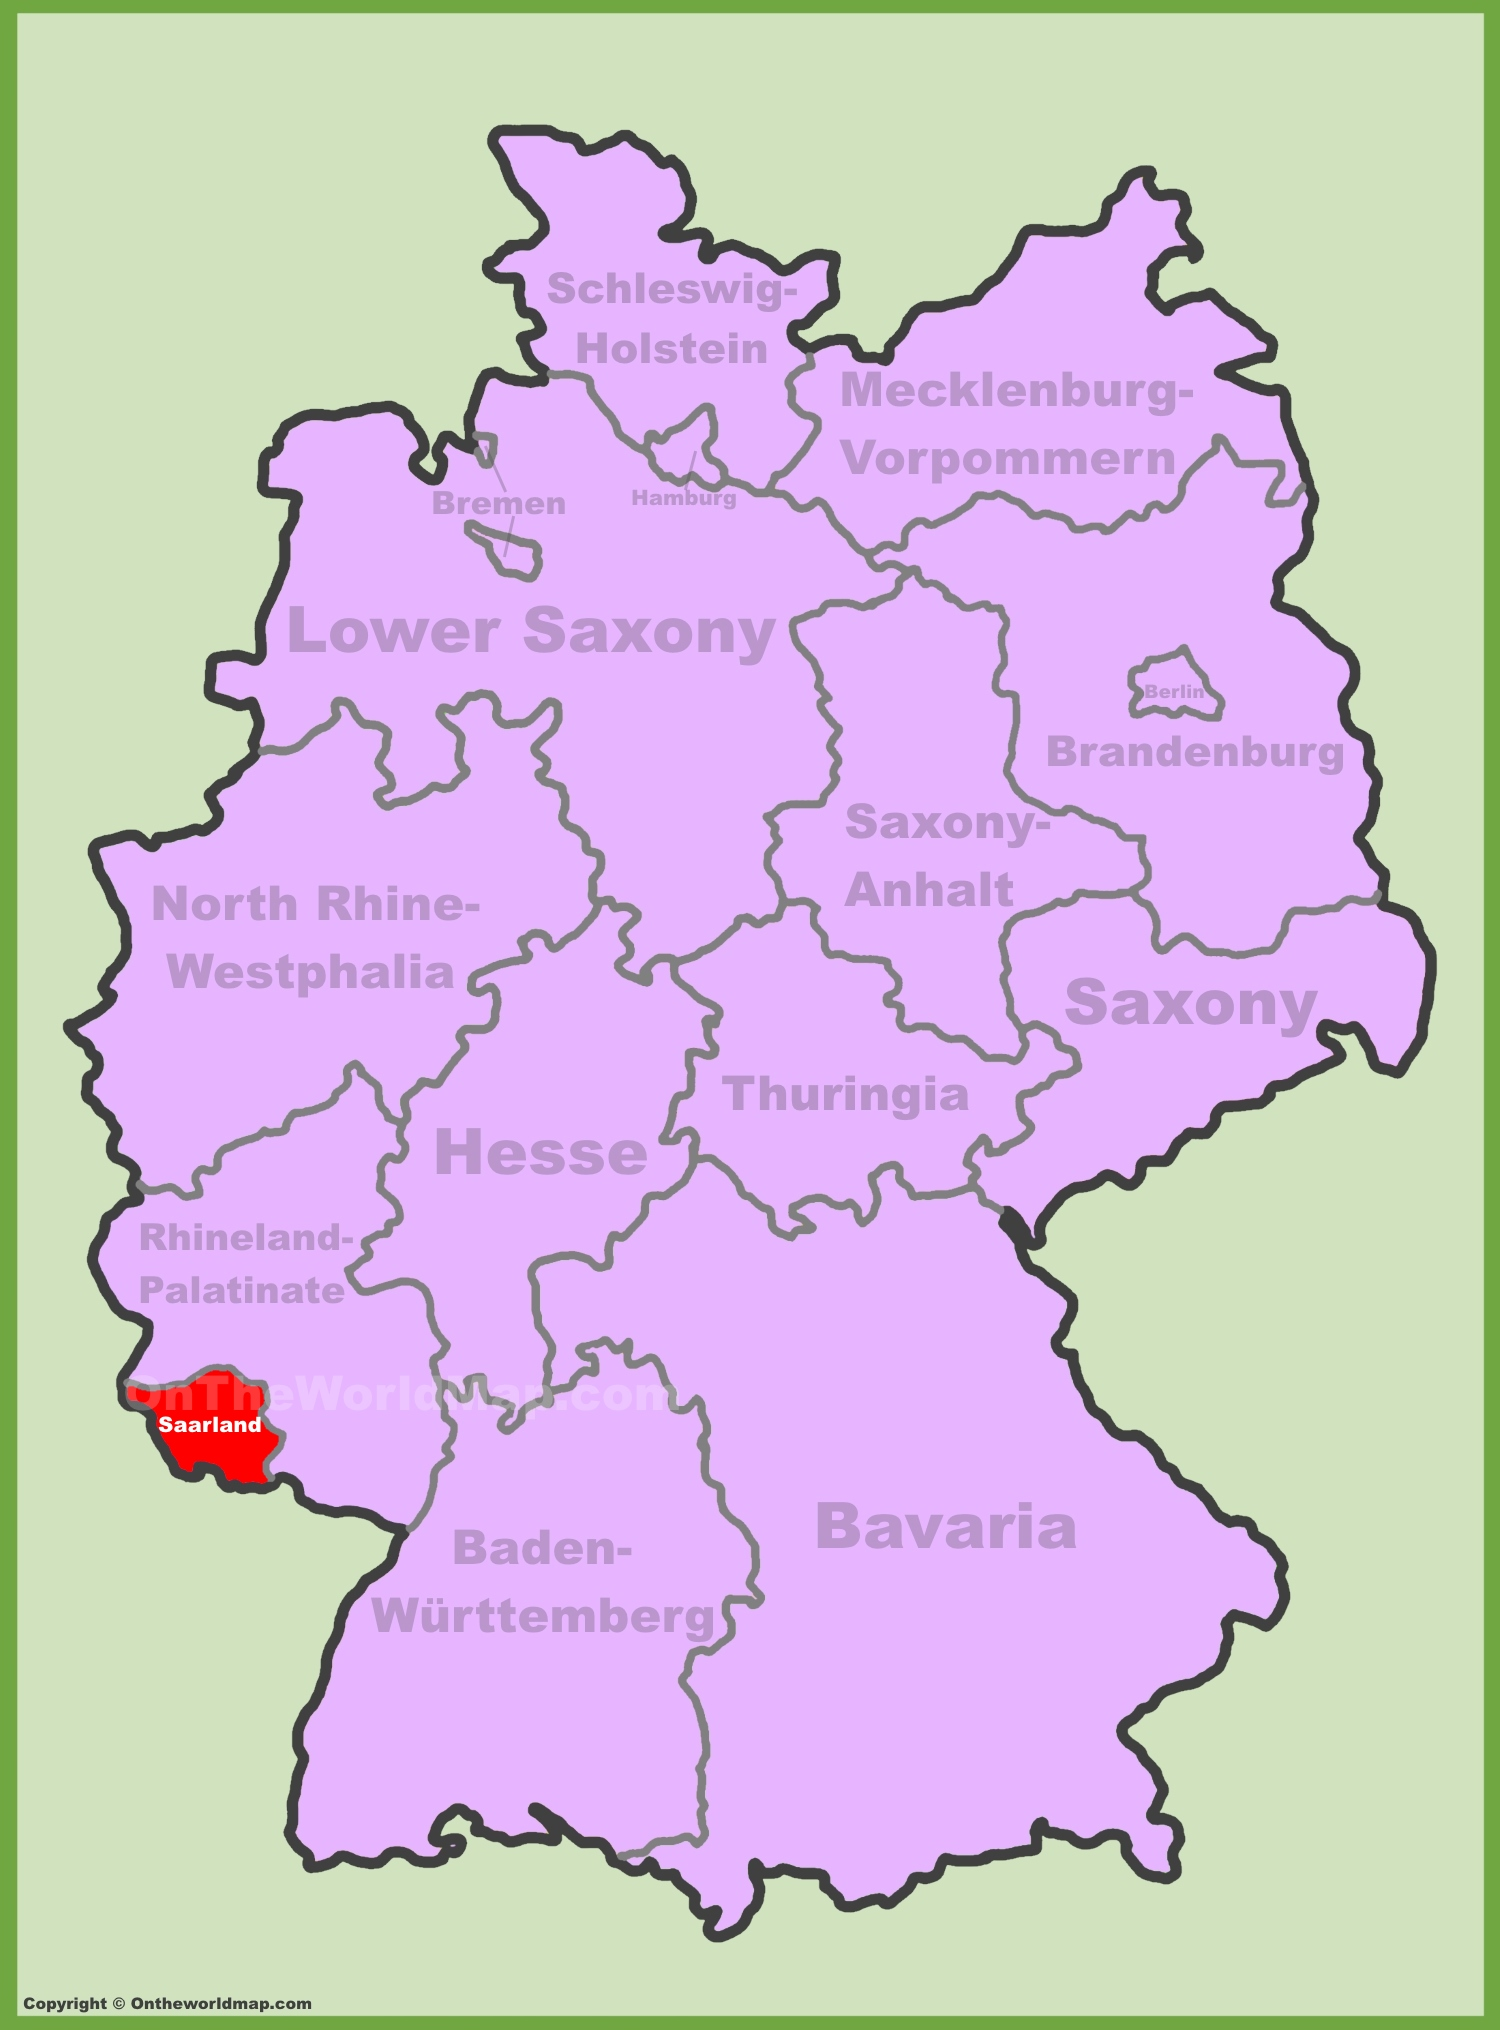 saarland location on the germany map